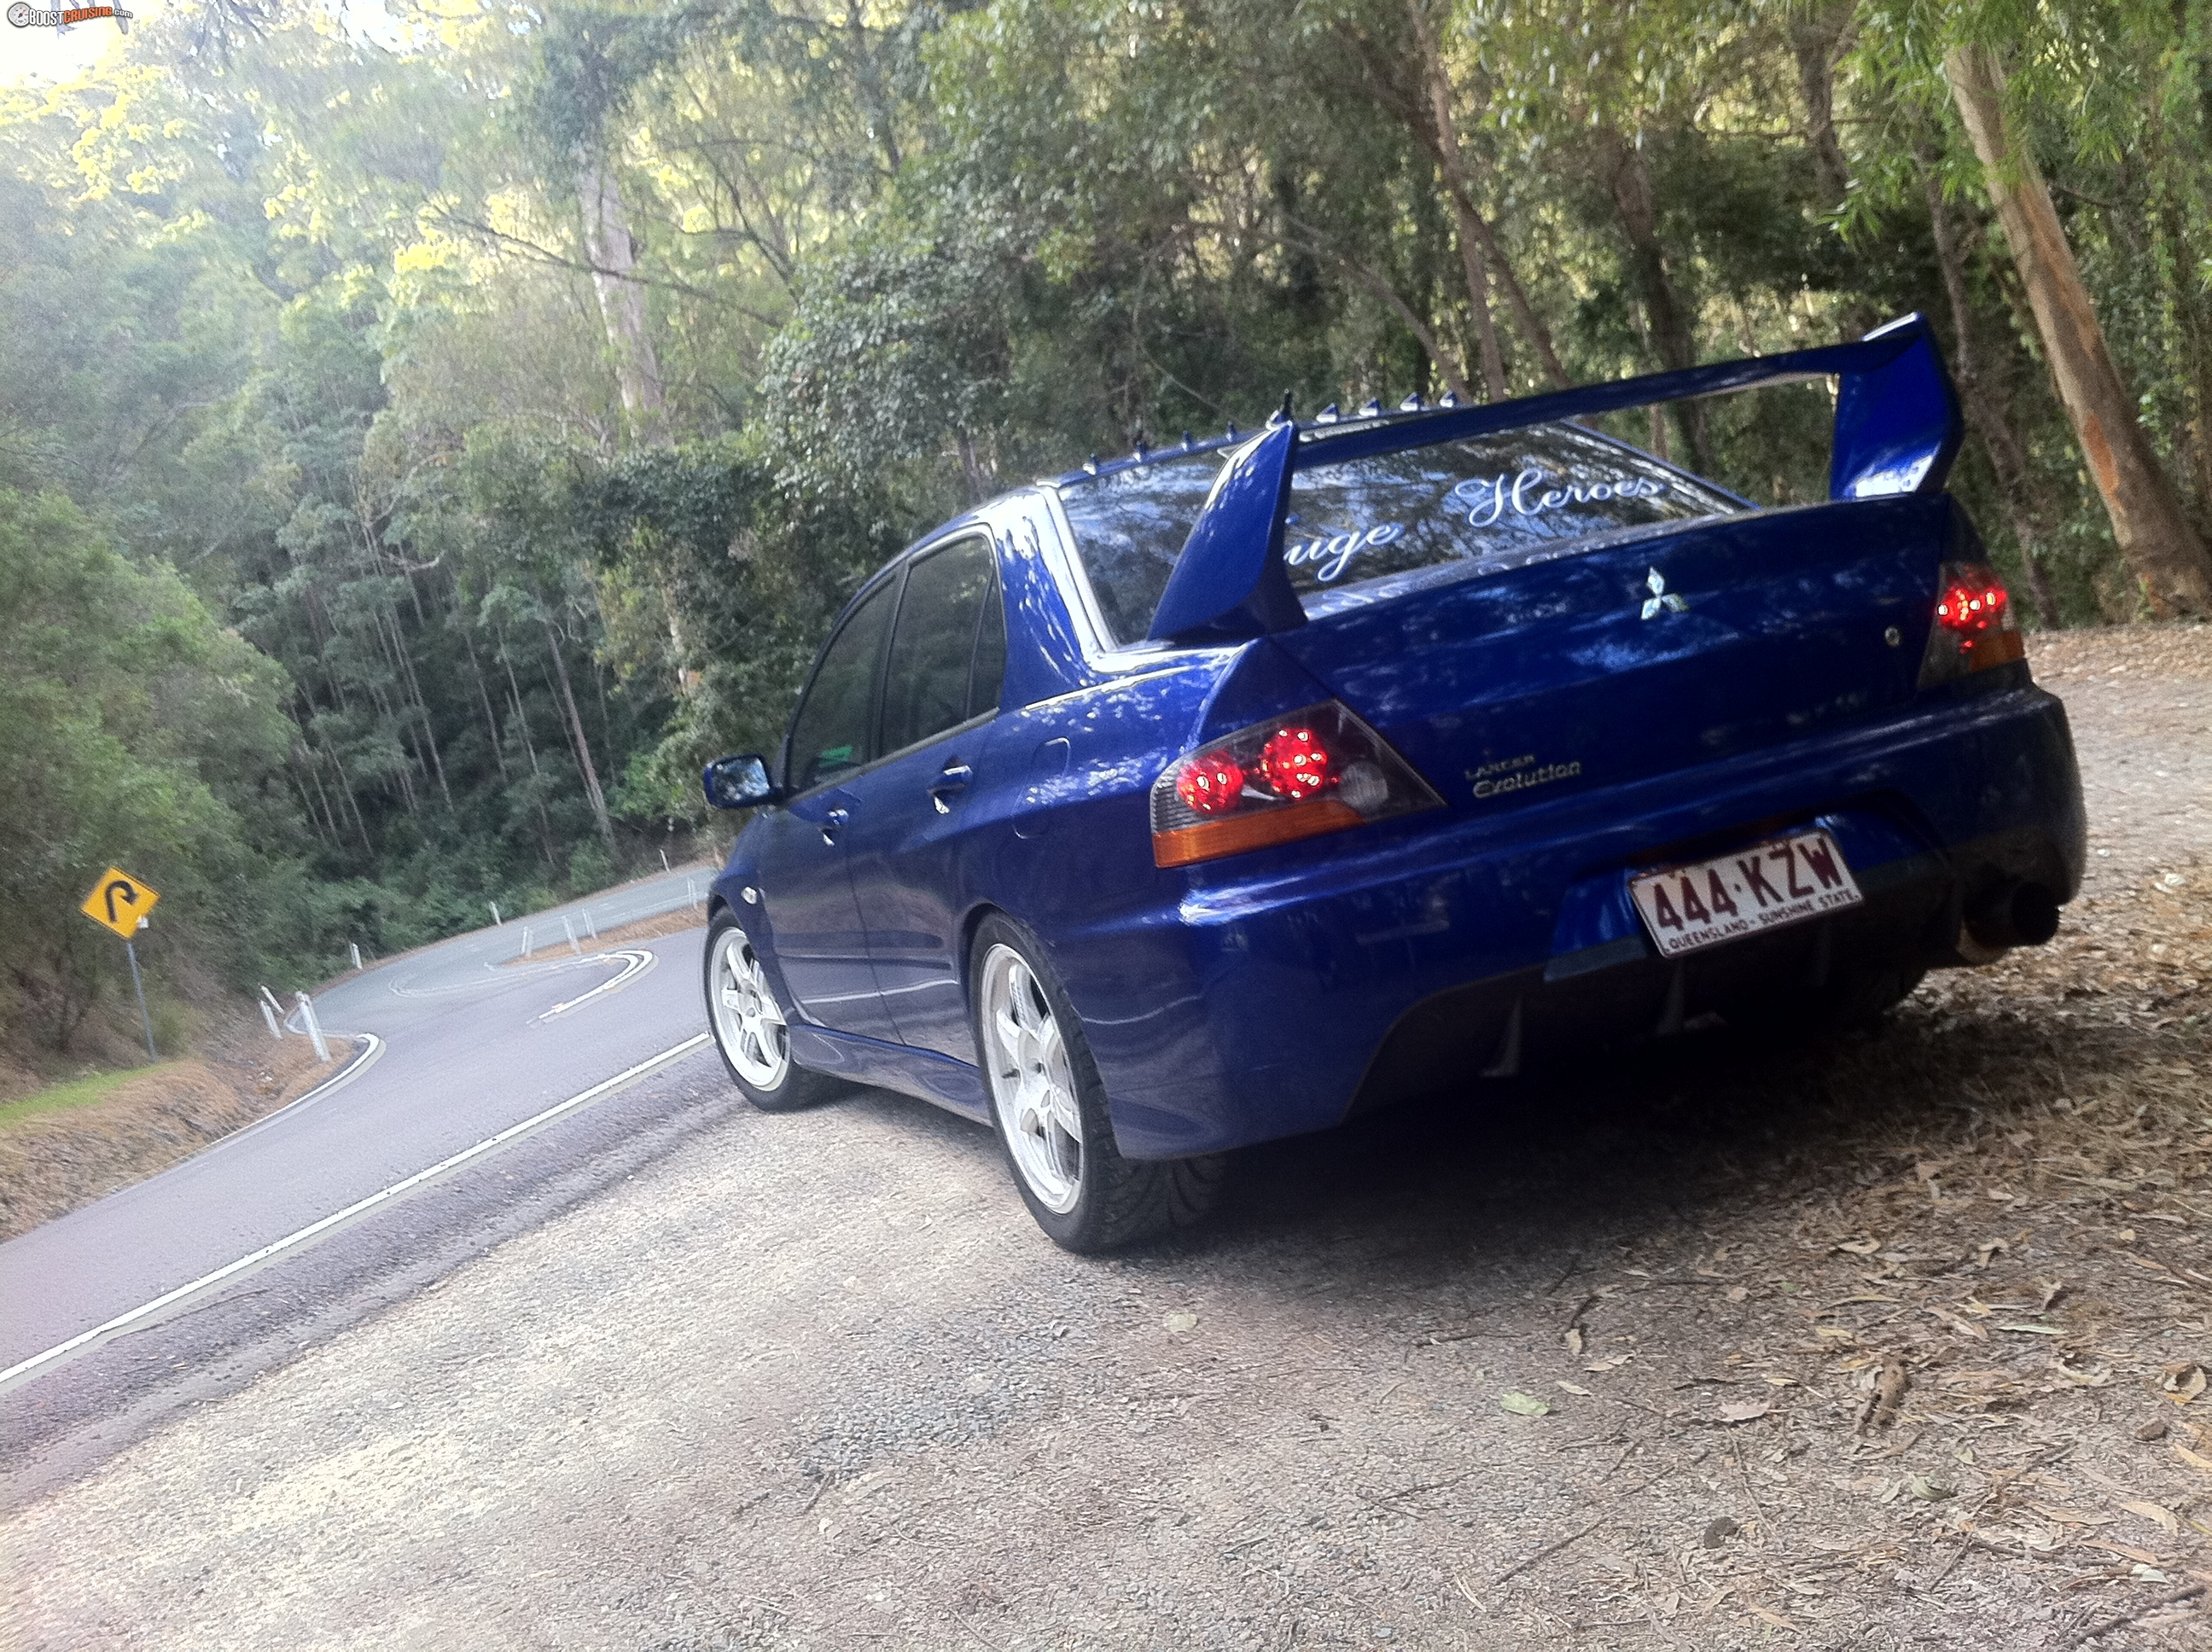 mitsubishi evolution philippines spacegear cars for sale lancer in the